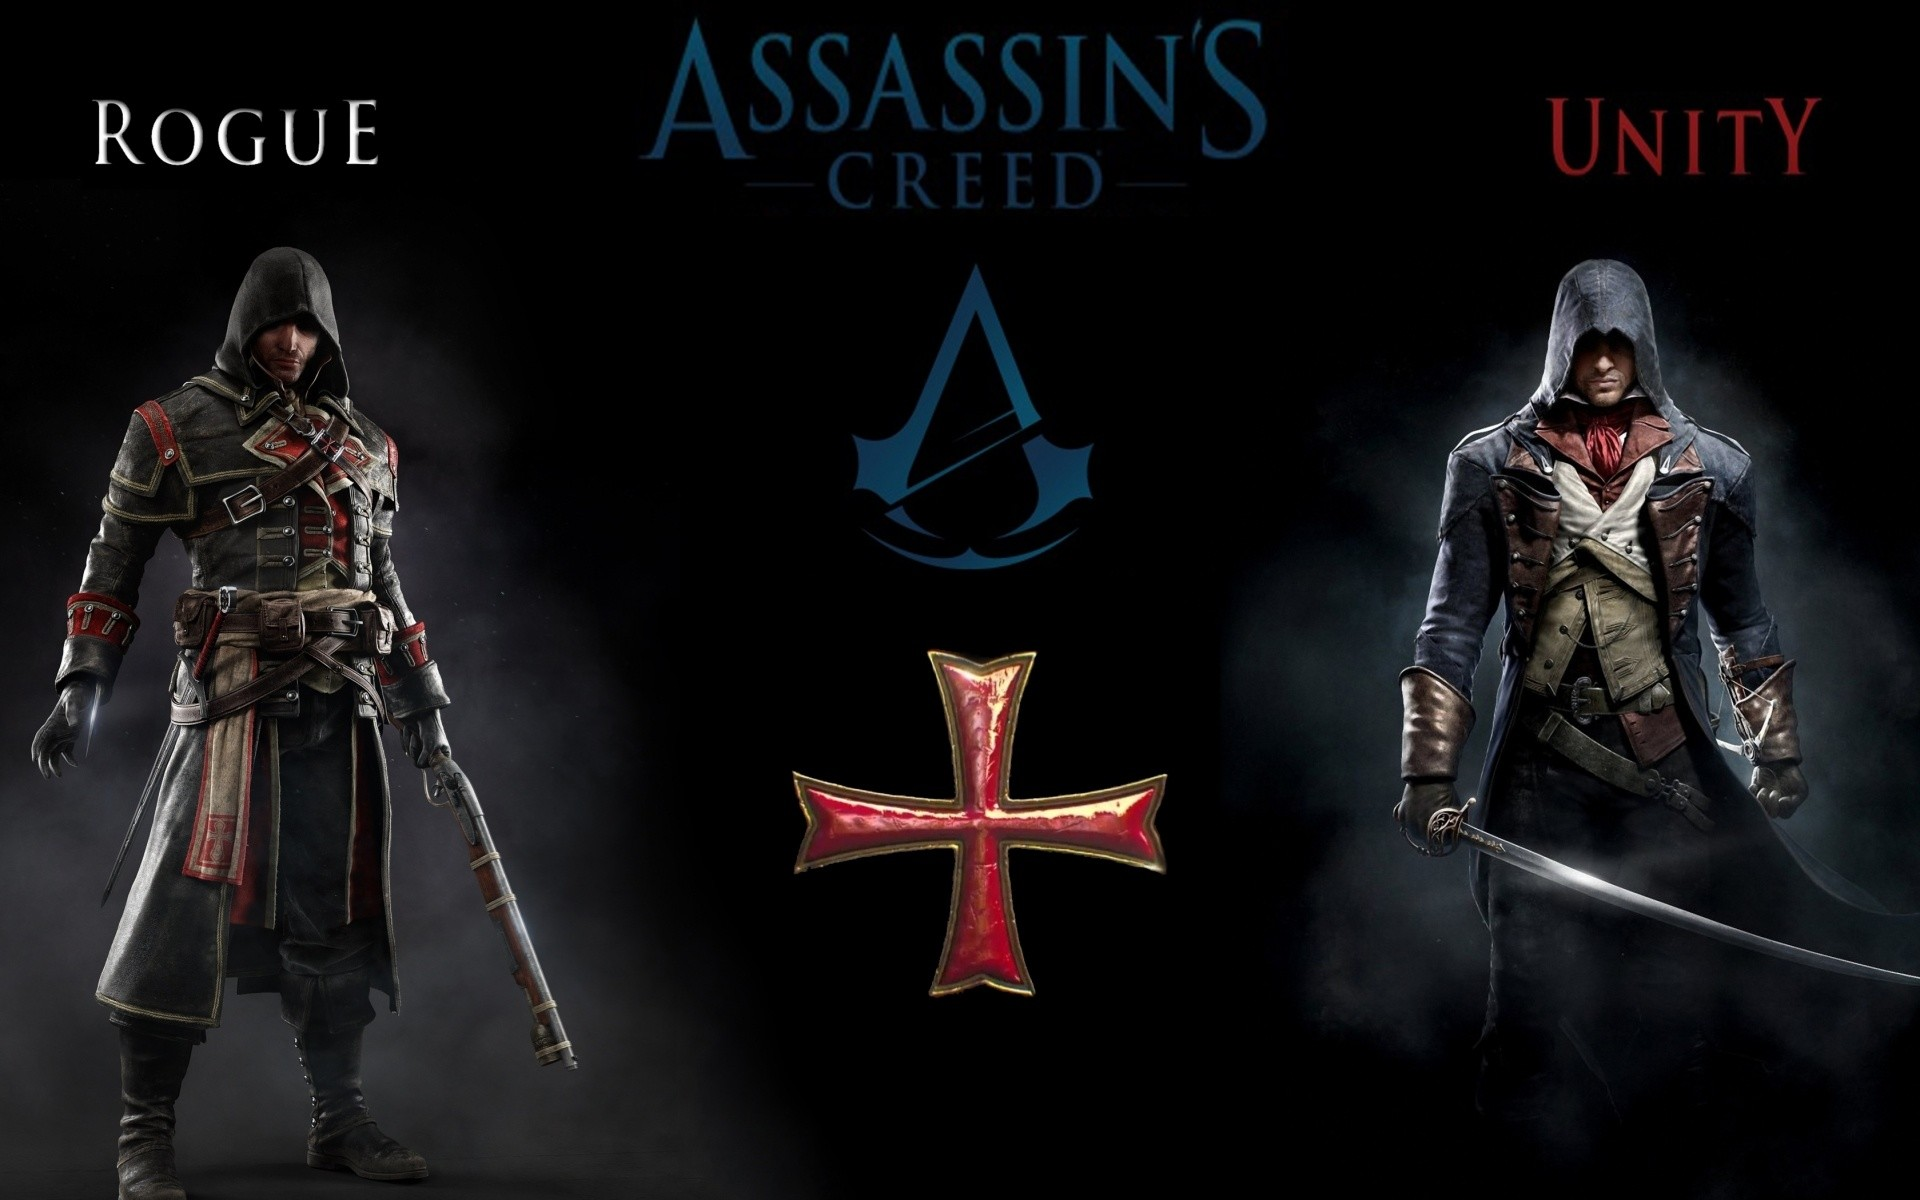 Wallpaper 1080p Assassin's Creed Unity Rogue Video Game HD.